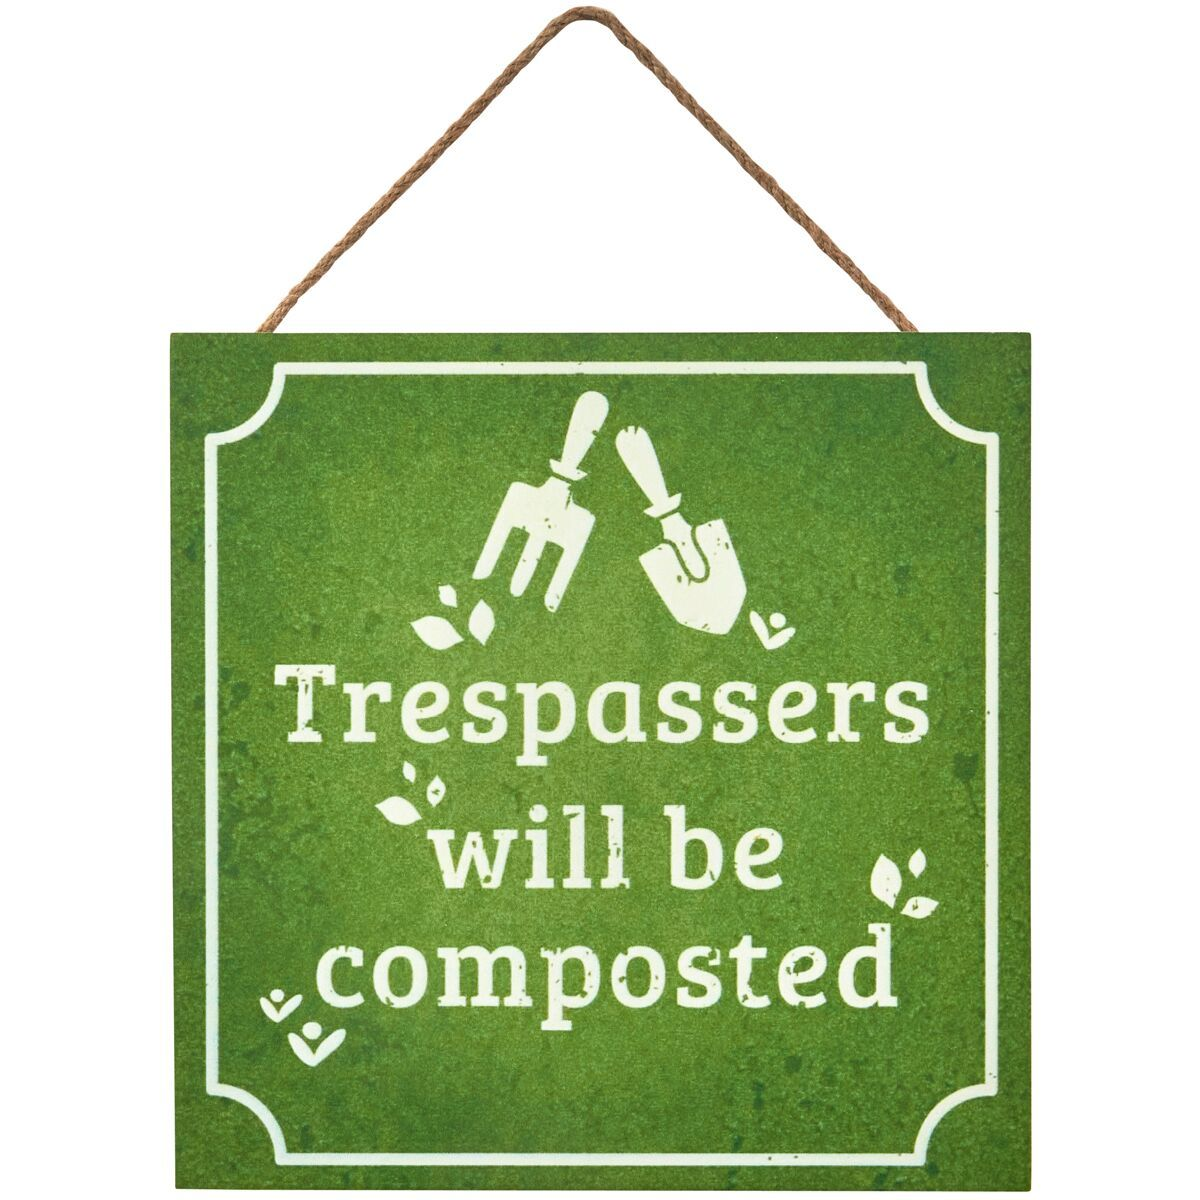 Transomnia: 'Trespassers will be composted' Sign image